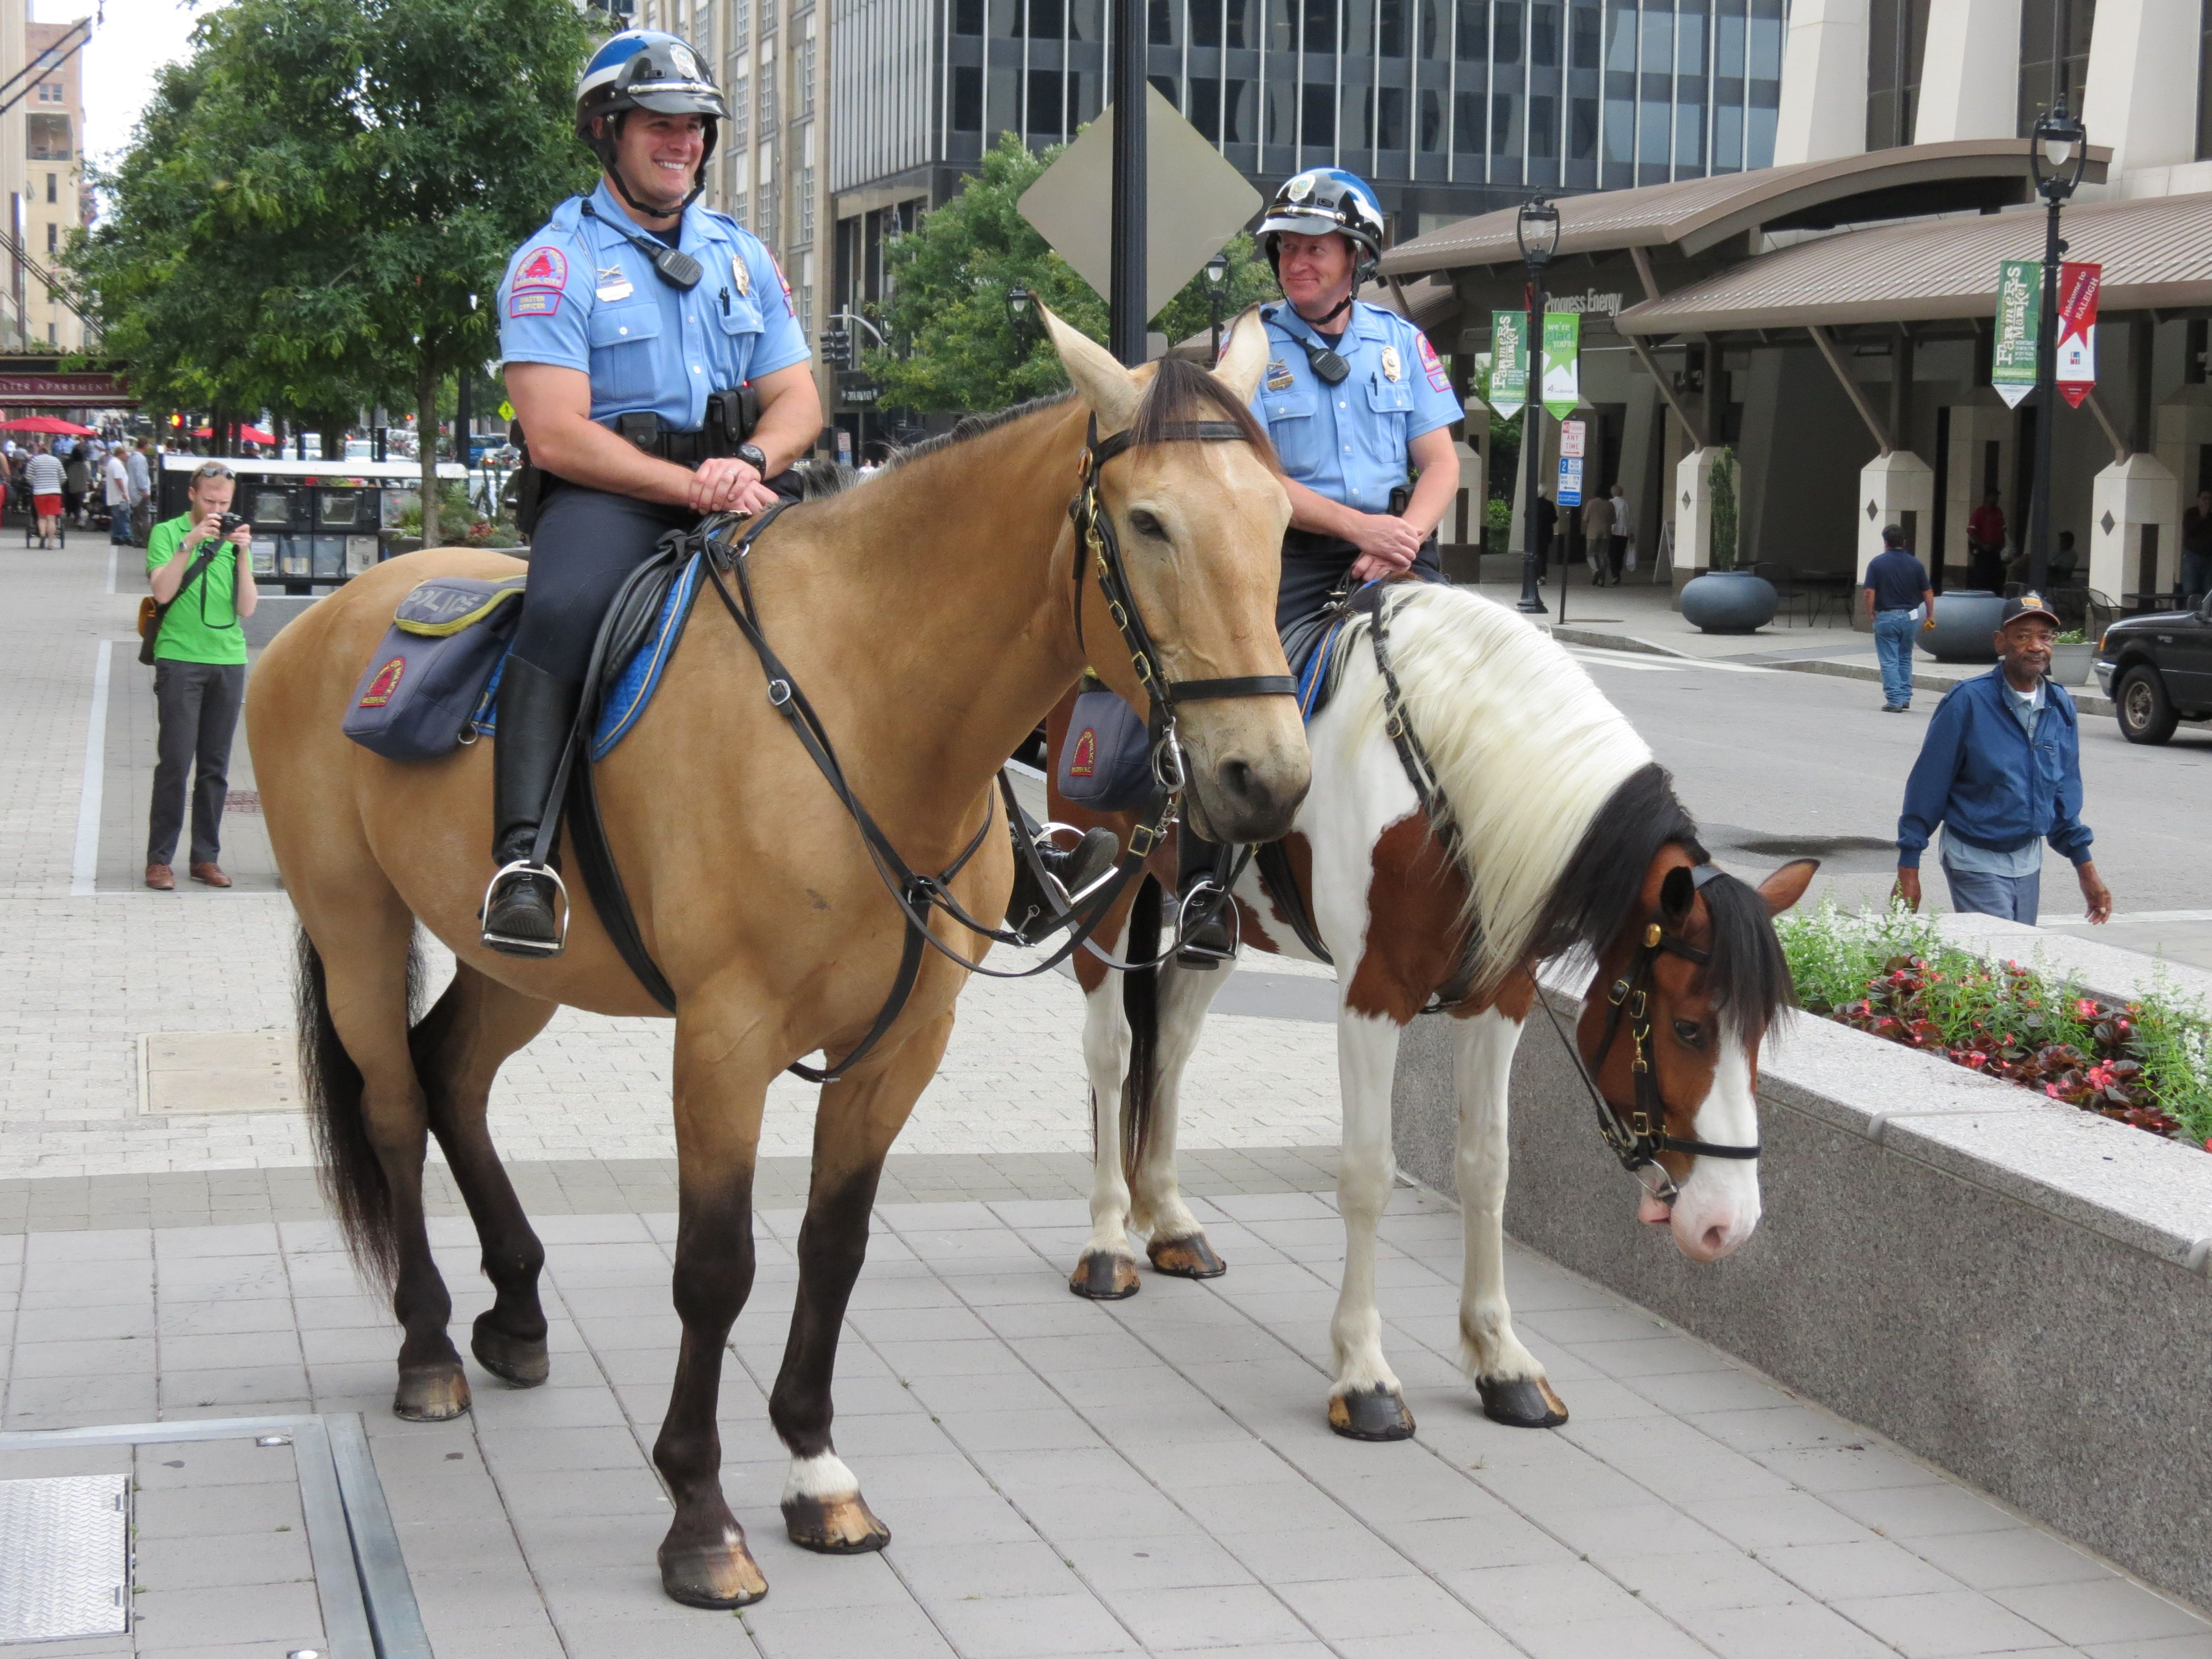 Mounted police Horses, Police, Law enforcement